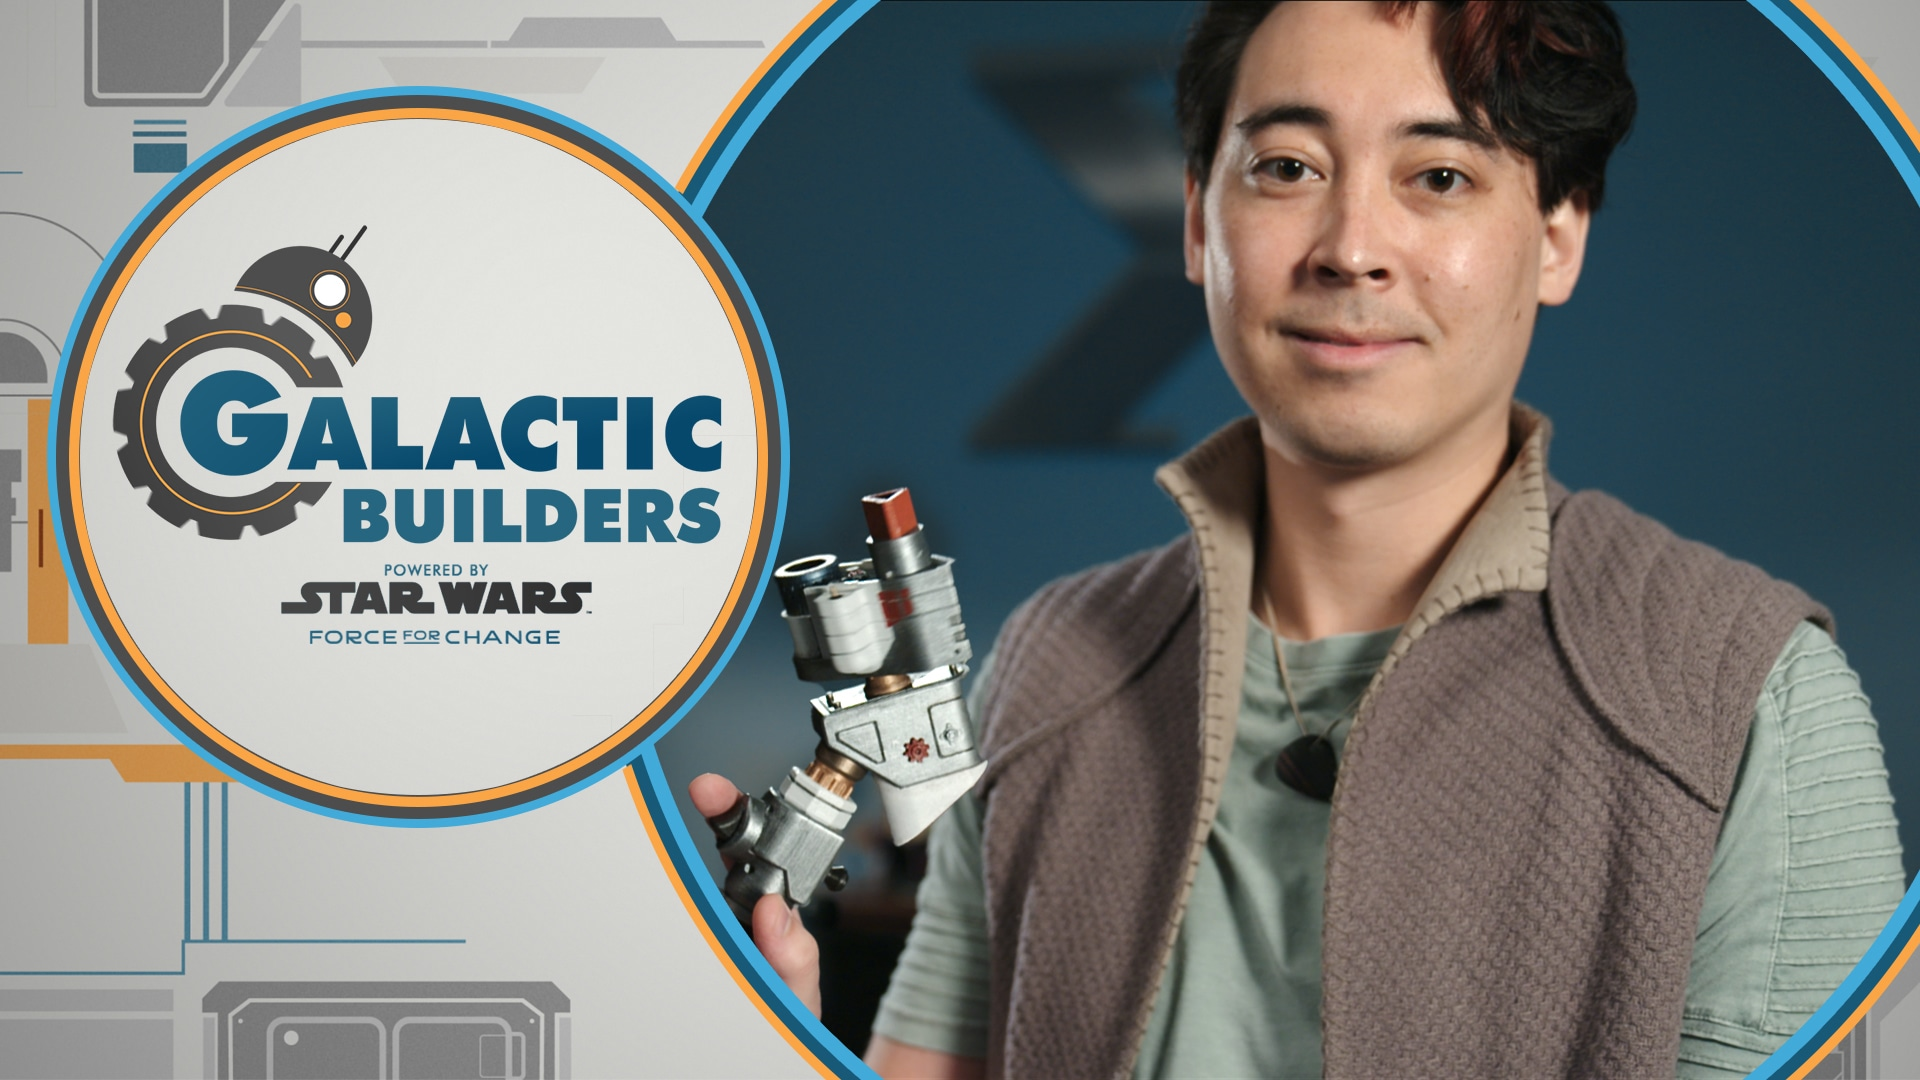 Building Star Wars Virtual Reality Experiences with ILMxLAB   Galactic Builders